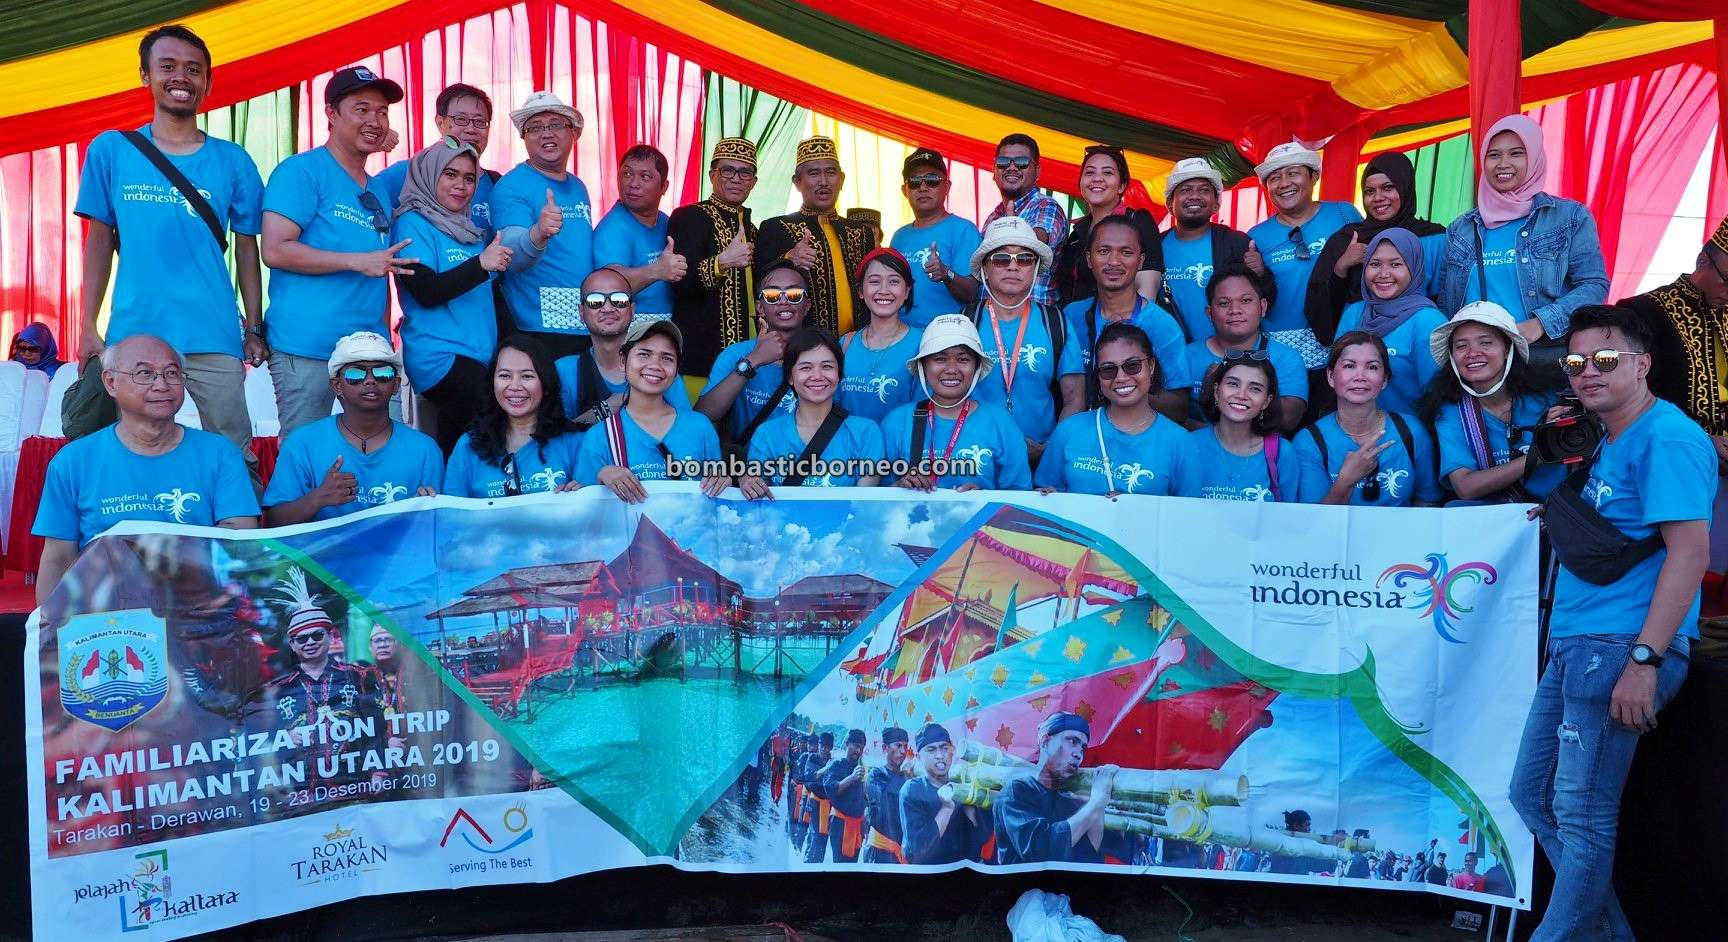 authentic, traditional, culture, backpackers, event, exploration, North Kalimantan, Amal Beach, Obyek wisata, Tourism, travel guide, Cross Border, Borneo, 穿越婆罗洲印尼游踪, 北加里曼丹打拉根岛